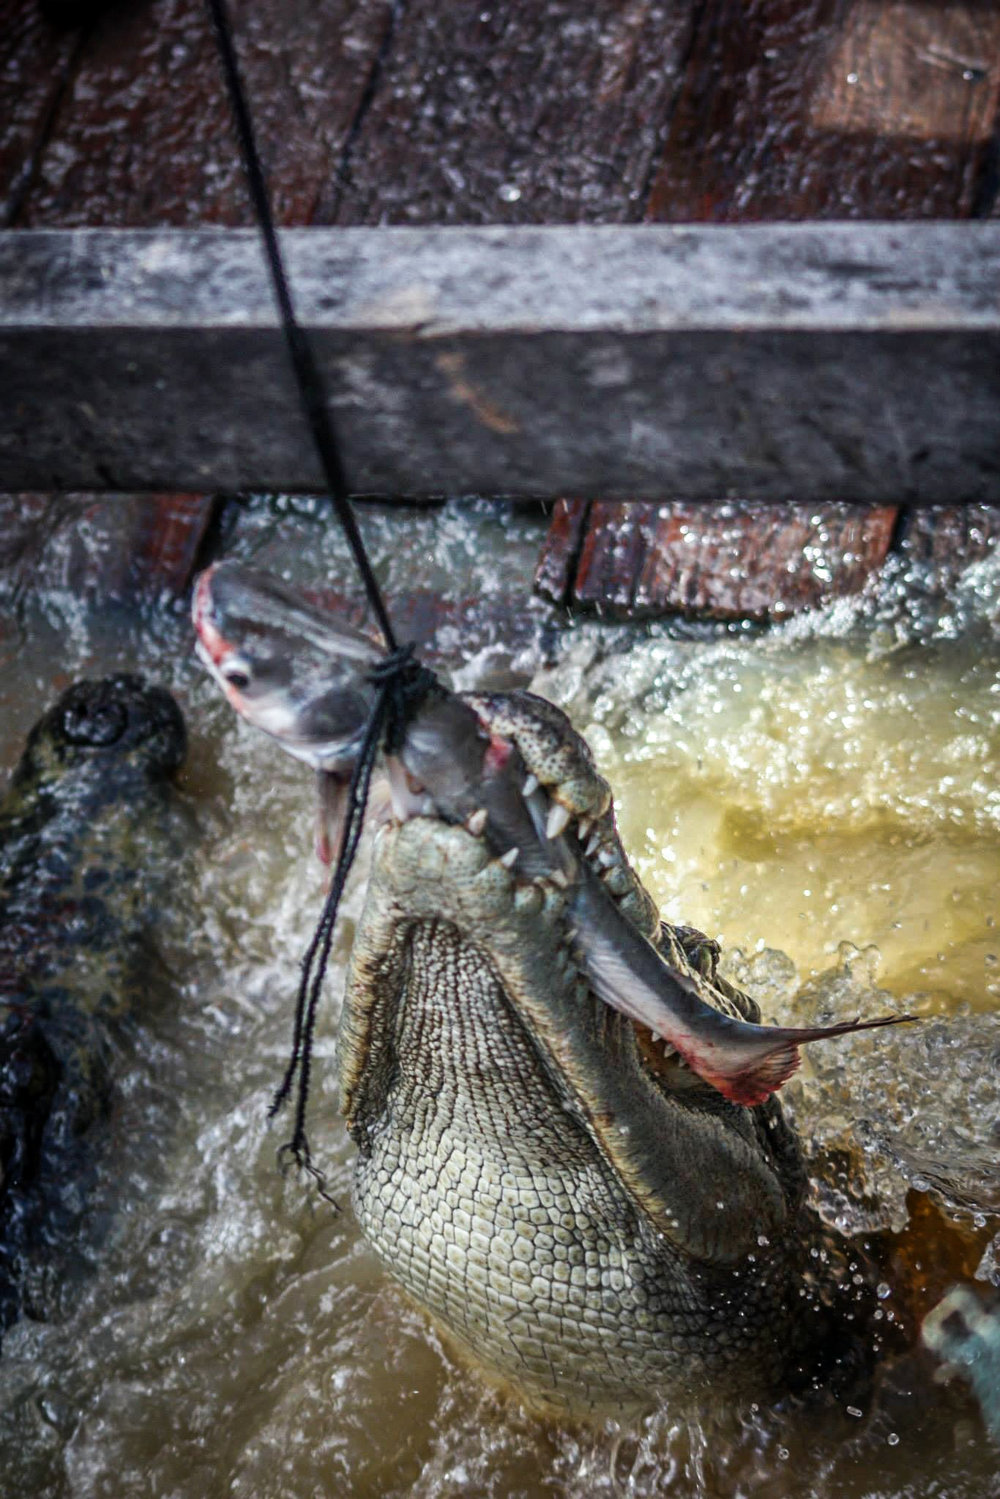 A crocodile snatches a fish dangled by a tourist at a popular attraction located on one of the floating villages in the northern provinces surrounding Siem Reap.